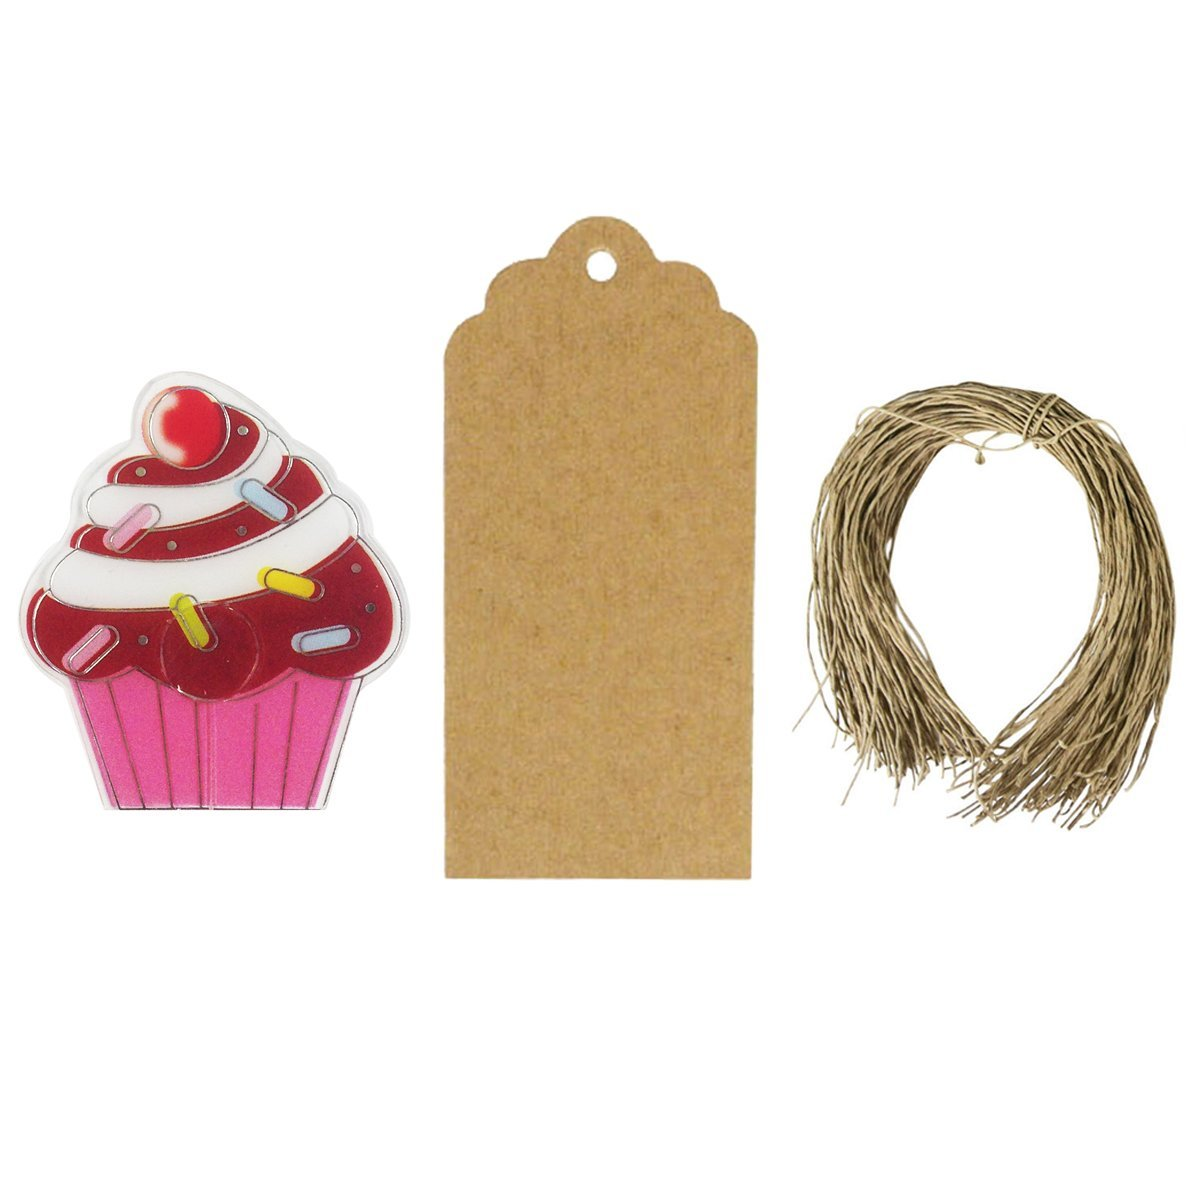 Wrapables Set of 50 Cupcake Bag Clips with 20 Scalloped Gift Tags